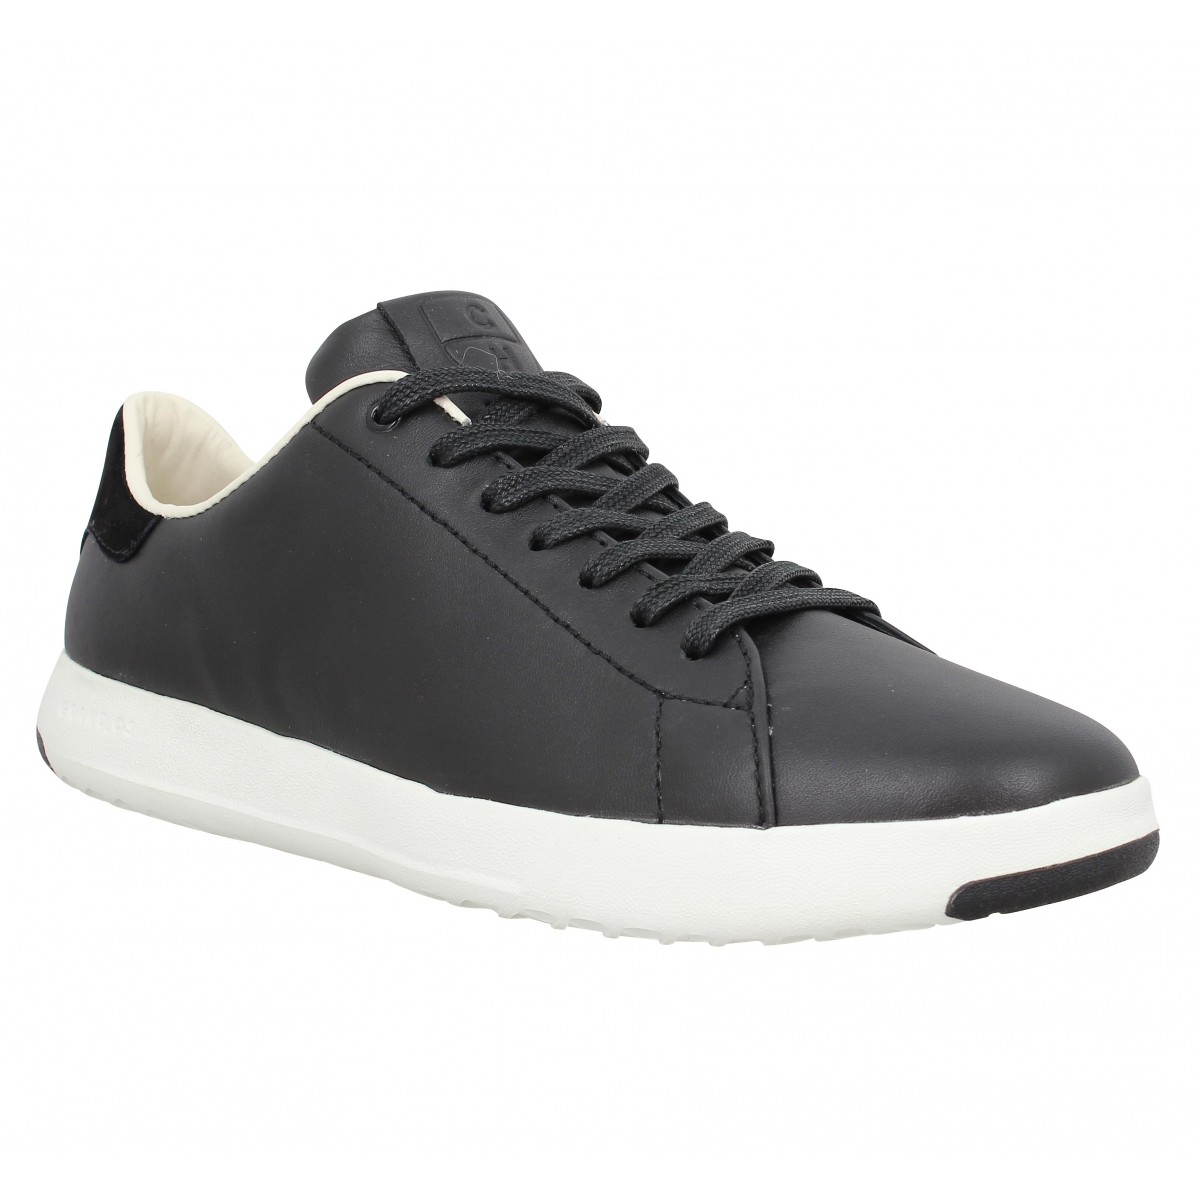 Baskets COLE HAAN GP Tennis cuir Homme Noir